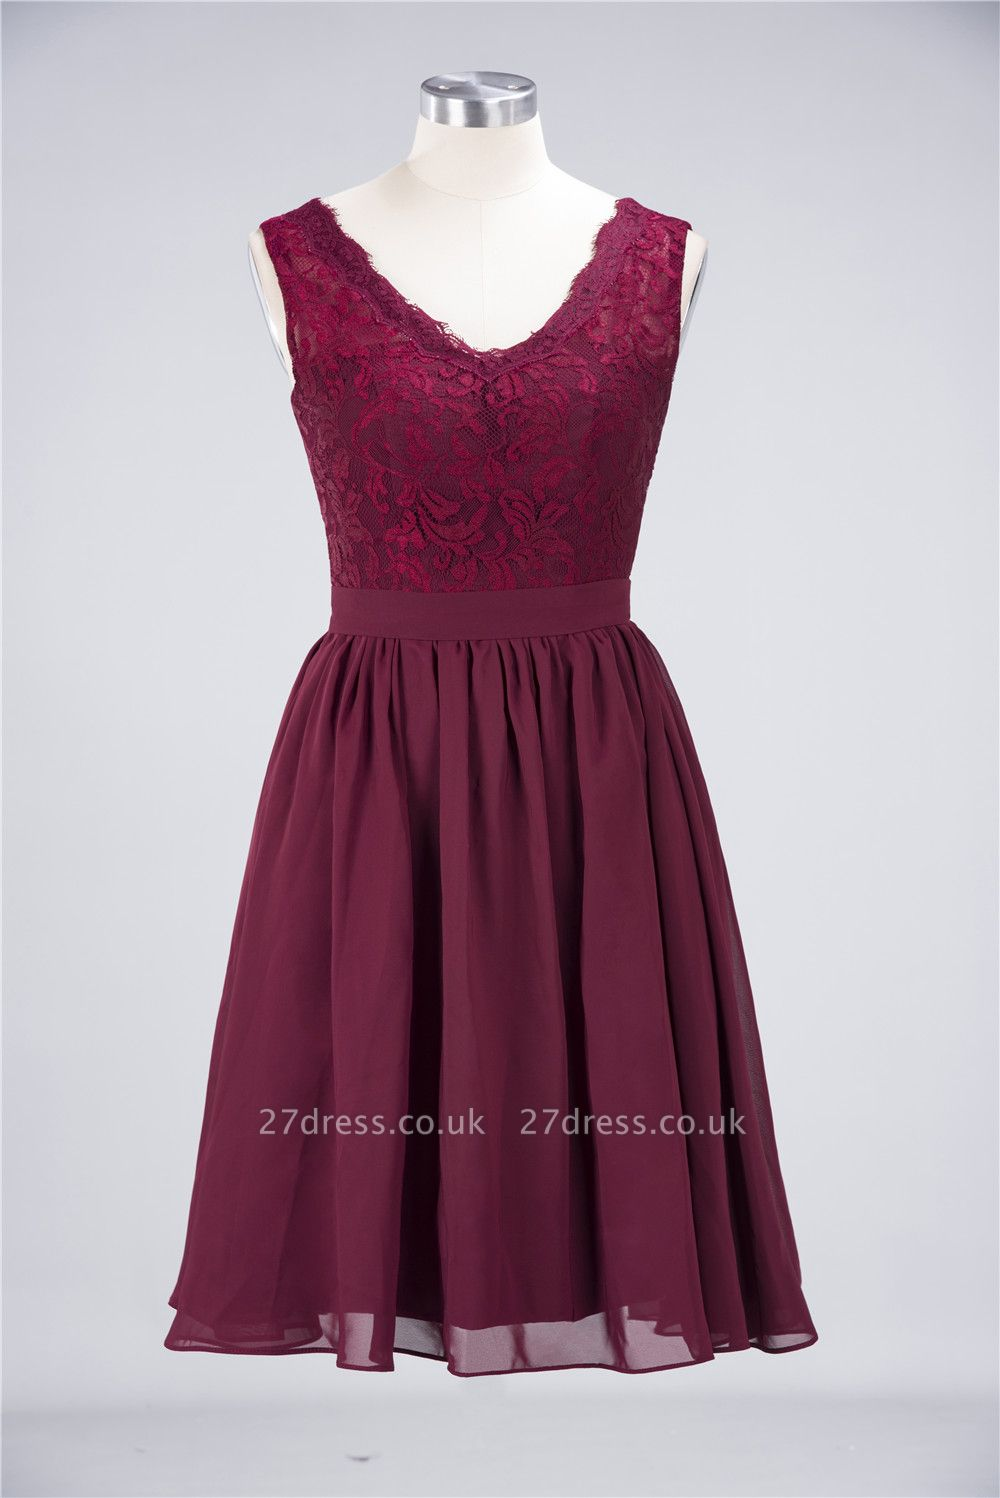 Sexy A-line Flowy Lace Alluring V-neck Sleeveless Short length Bridesmaid Dress UK UK with Ruffles